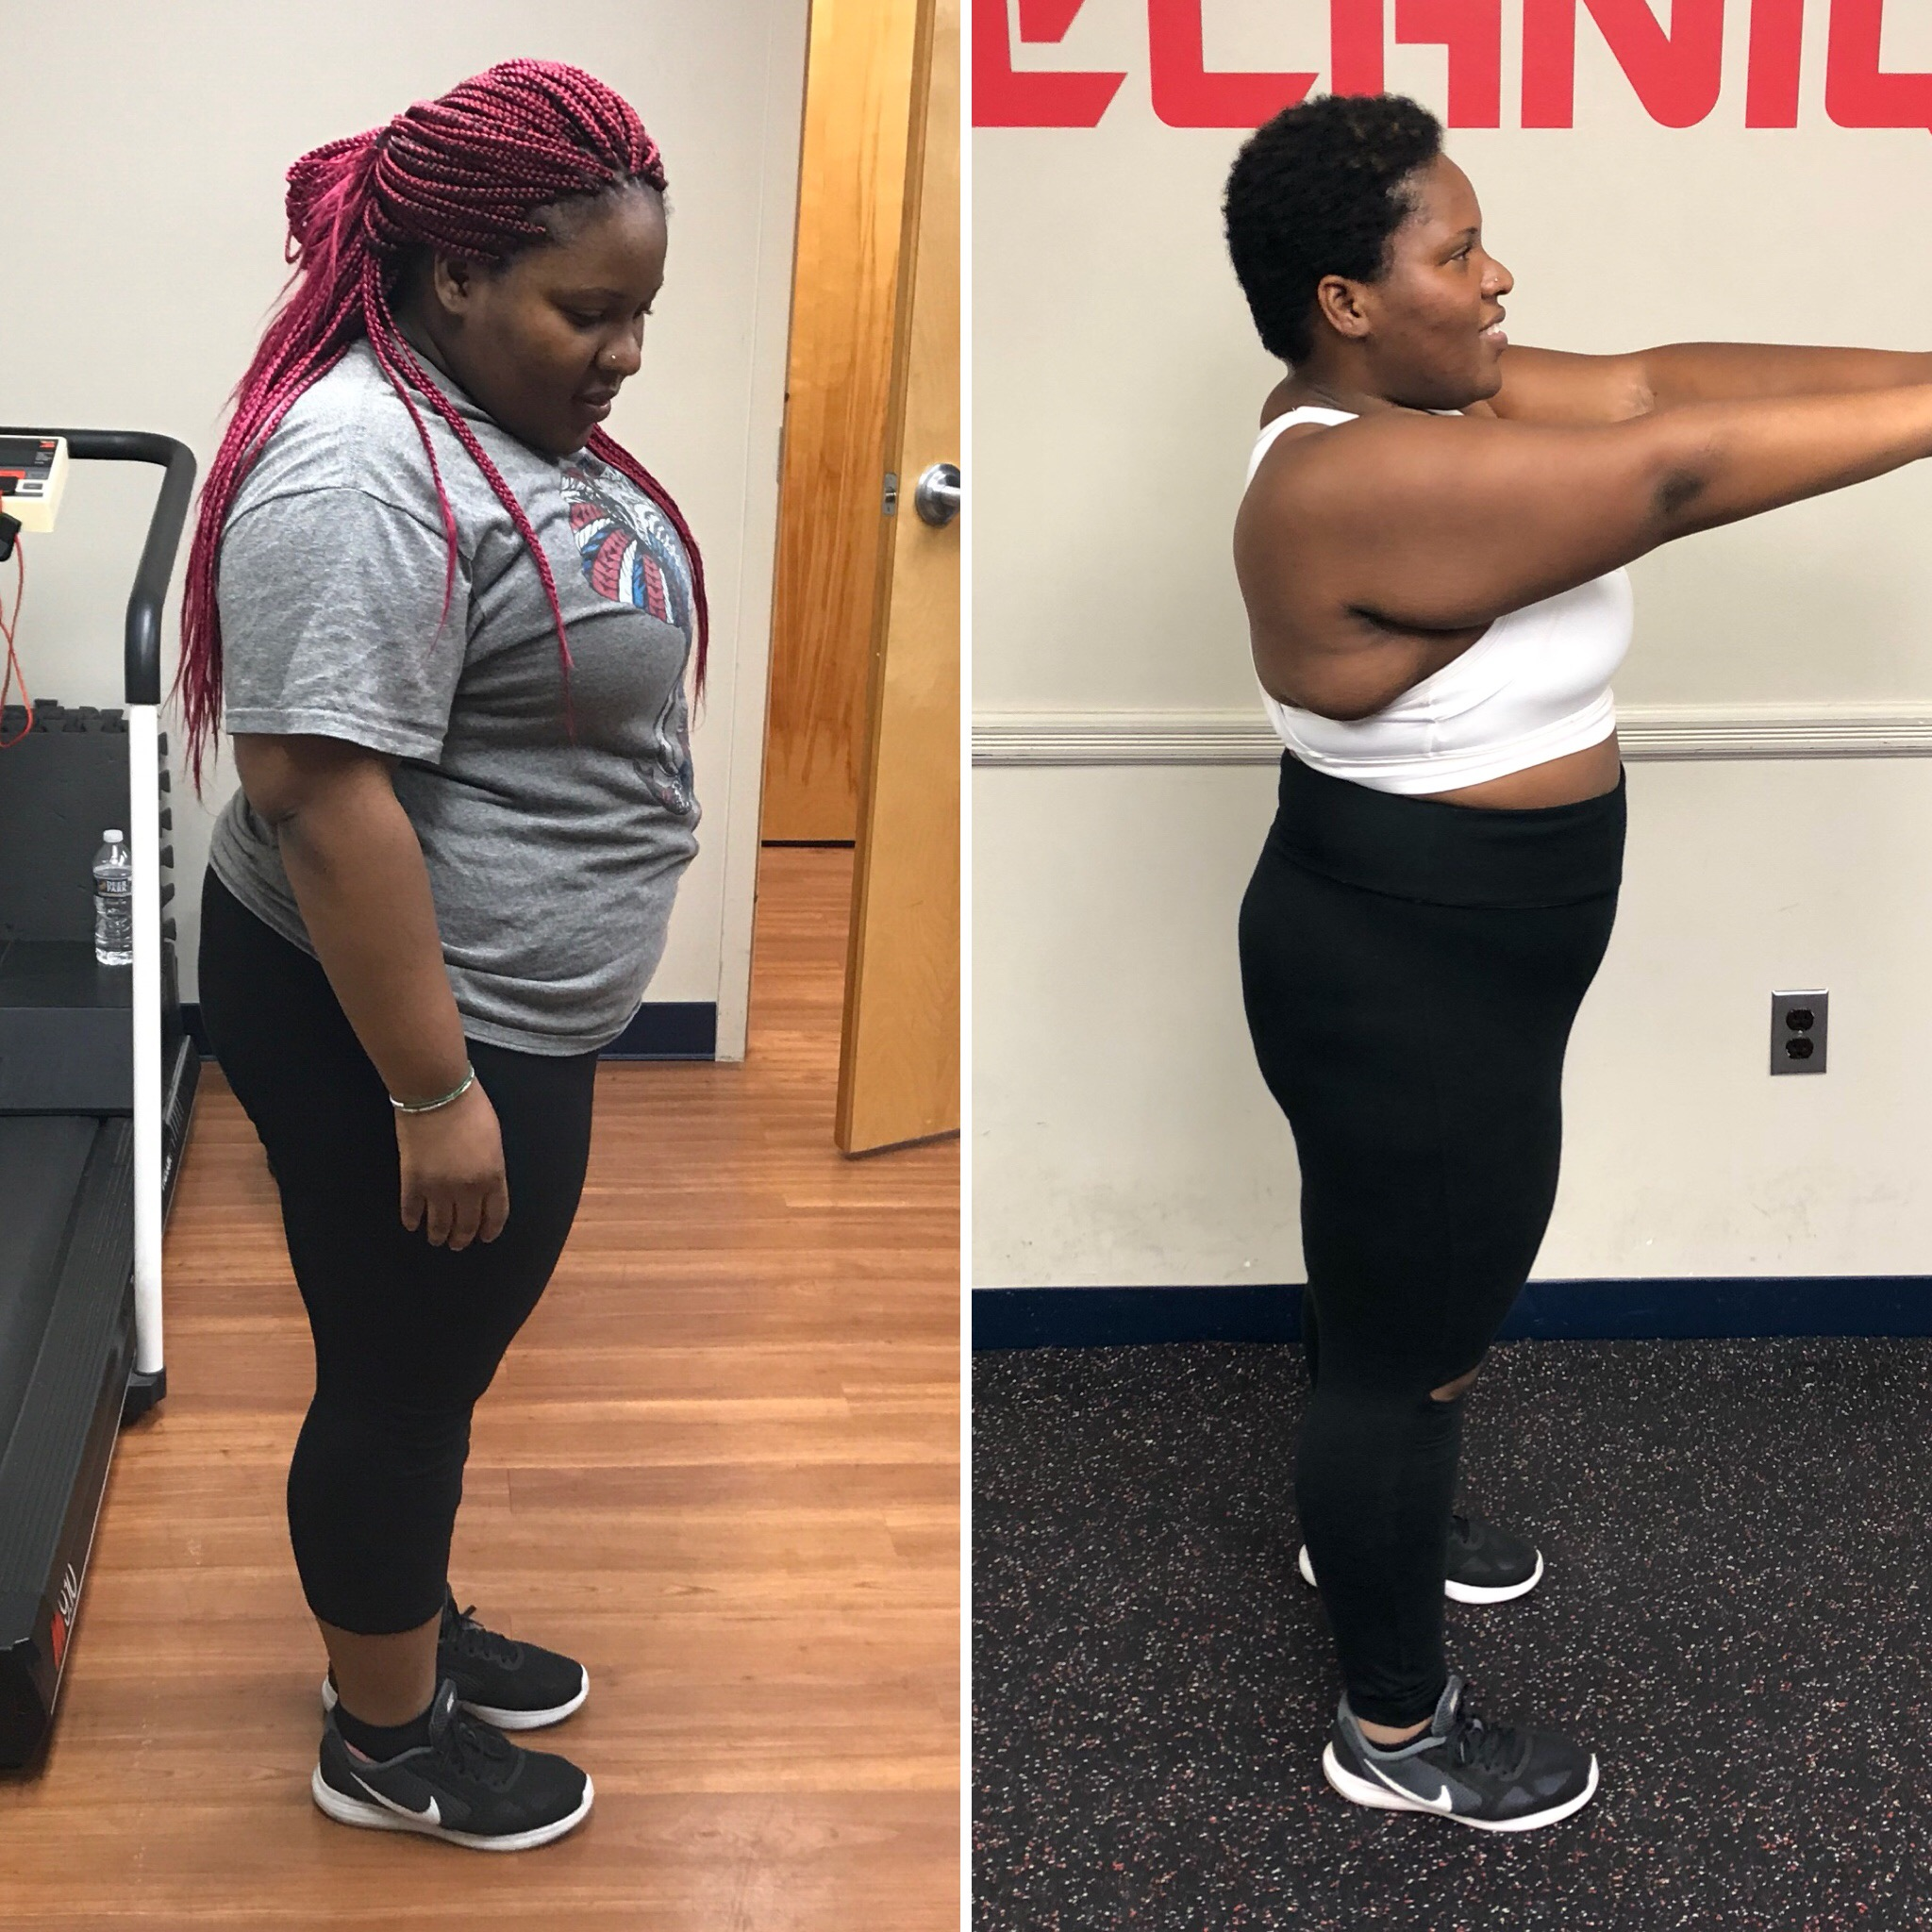 46lbs Weight Loss